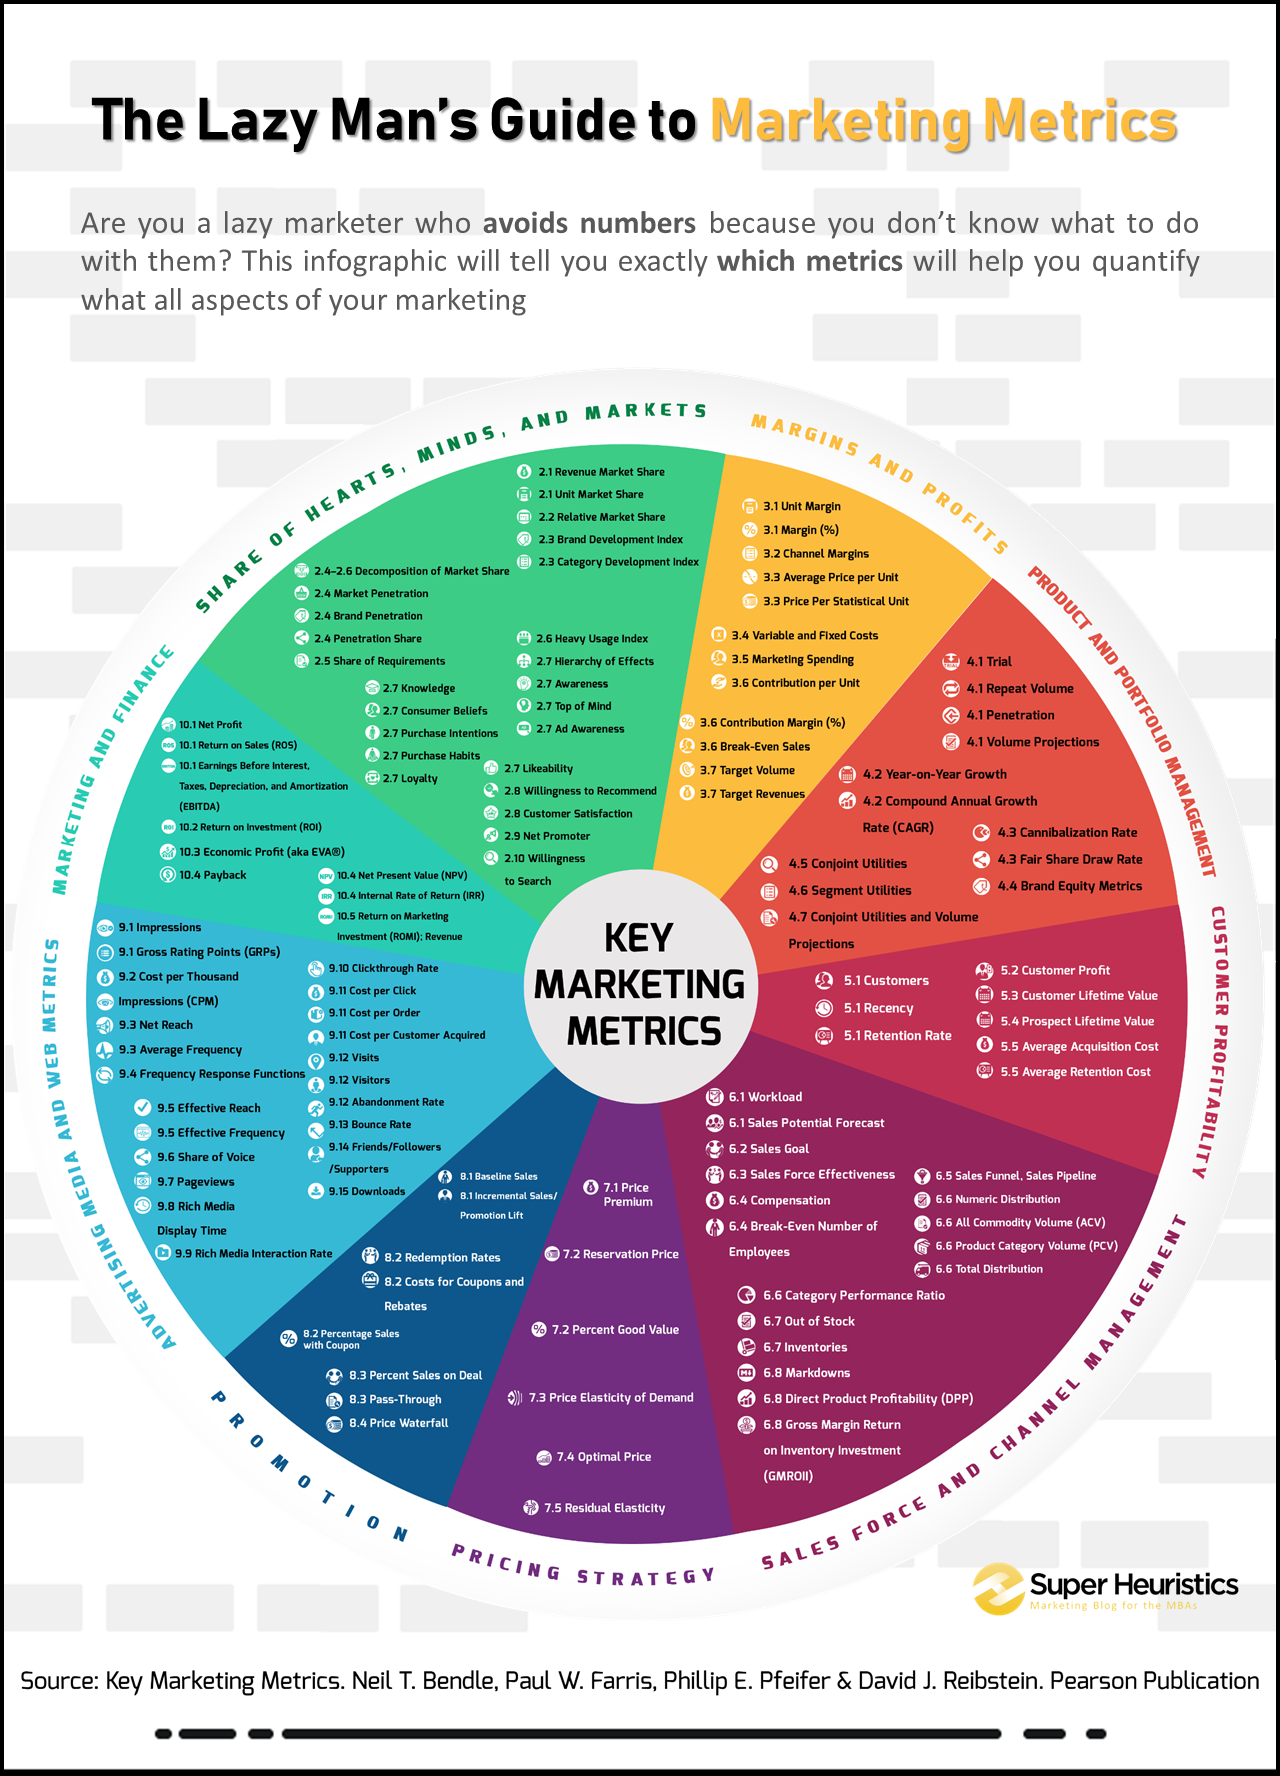 Key Marketing Metrics - Marketing Metrics